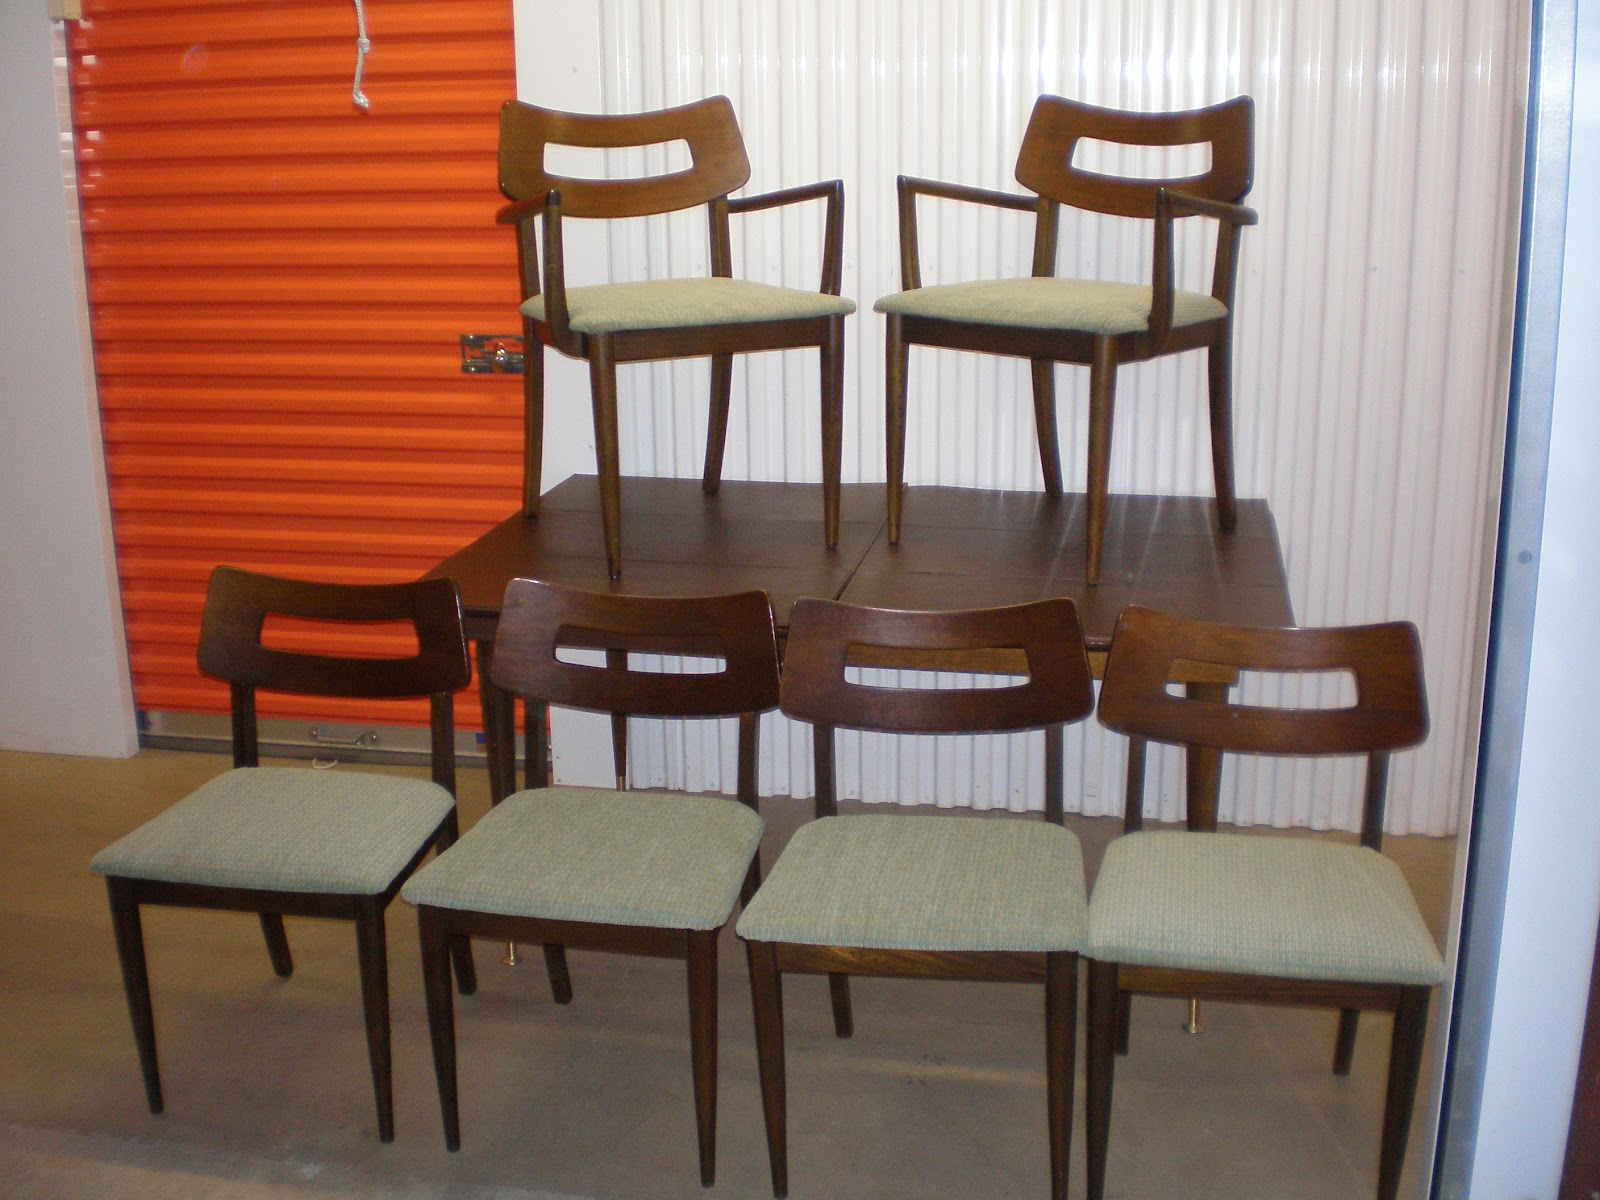 The Retrospective Modernist Walnut Dining Chairs by Bassett SOLD